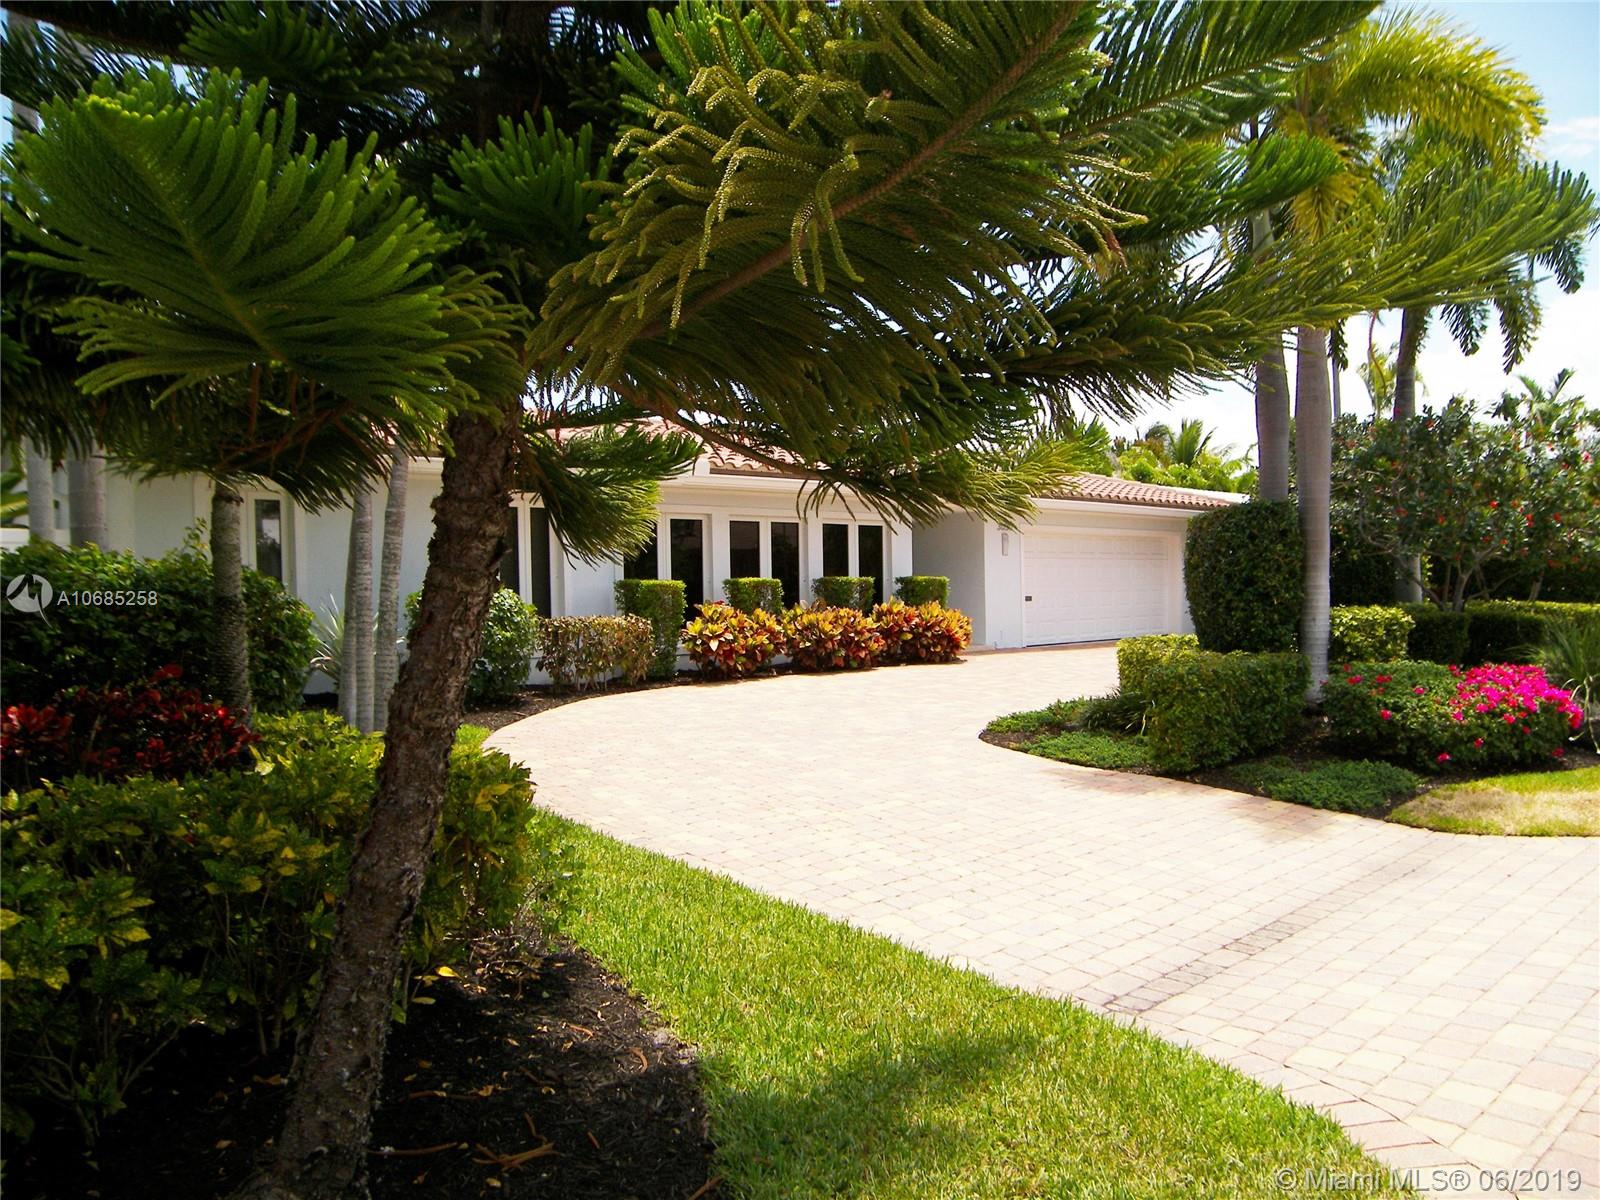 Amazing and unique contemporary waterfront masterpiece. Light and bright modern interior design: clean lines; Exquisite attention to detail at every turn of this 4 bed 3.5 bath plus office home. Chefs kitchen boasts Snaidero custom cabinetry, Miele appliances & quartz countertops. Large master suite features spa like bath with soaking tub, frameless shower & illuminating mirror. High ceilings in living areas.  Impact window & doors.  Backyard oasis has lush landscaping, large pool surrounded with marble pavers situated on 85 ft of waterfront with private dock;ocean access with no fixed bridges.  Walk or bike to Coral Ridge Yacht Club, Galleria Mall, Nice dining/shopping, or the Beach.